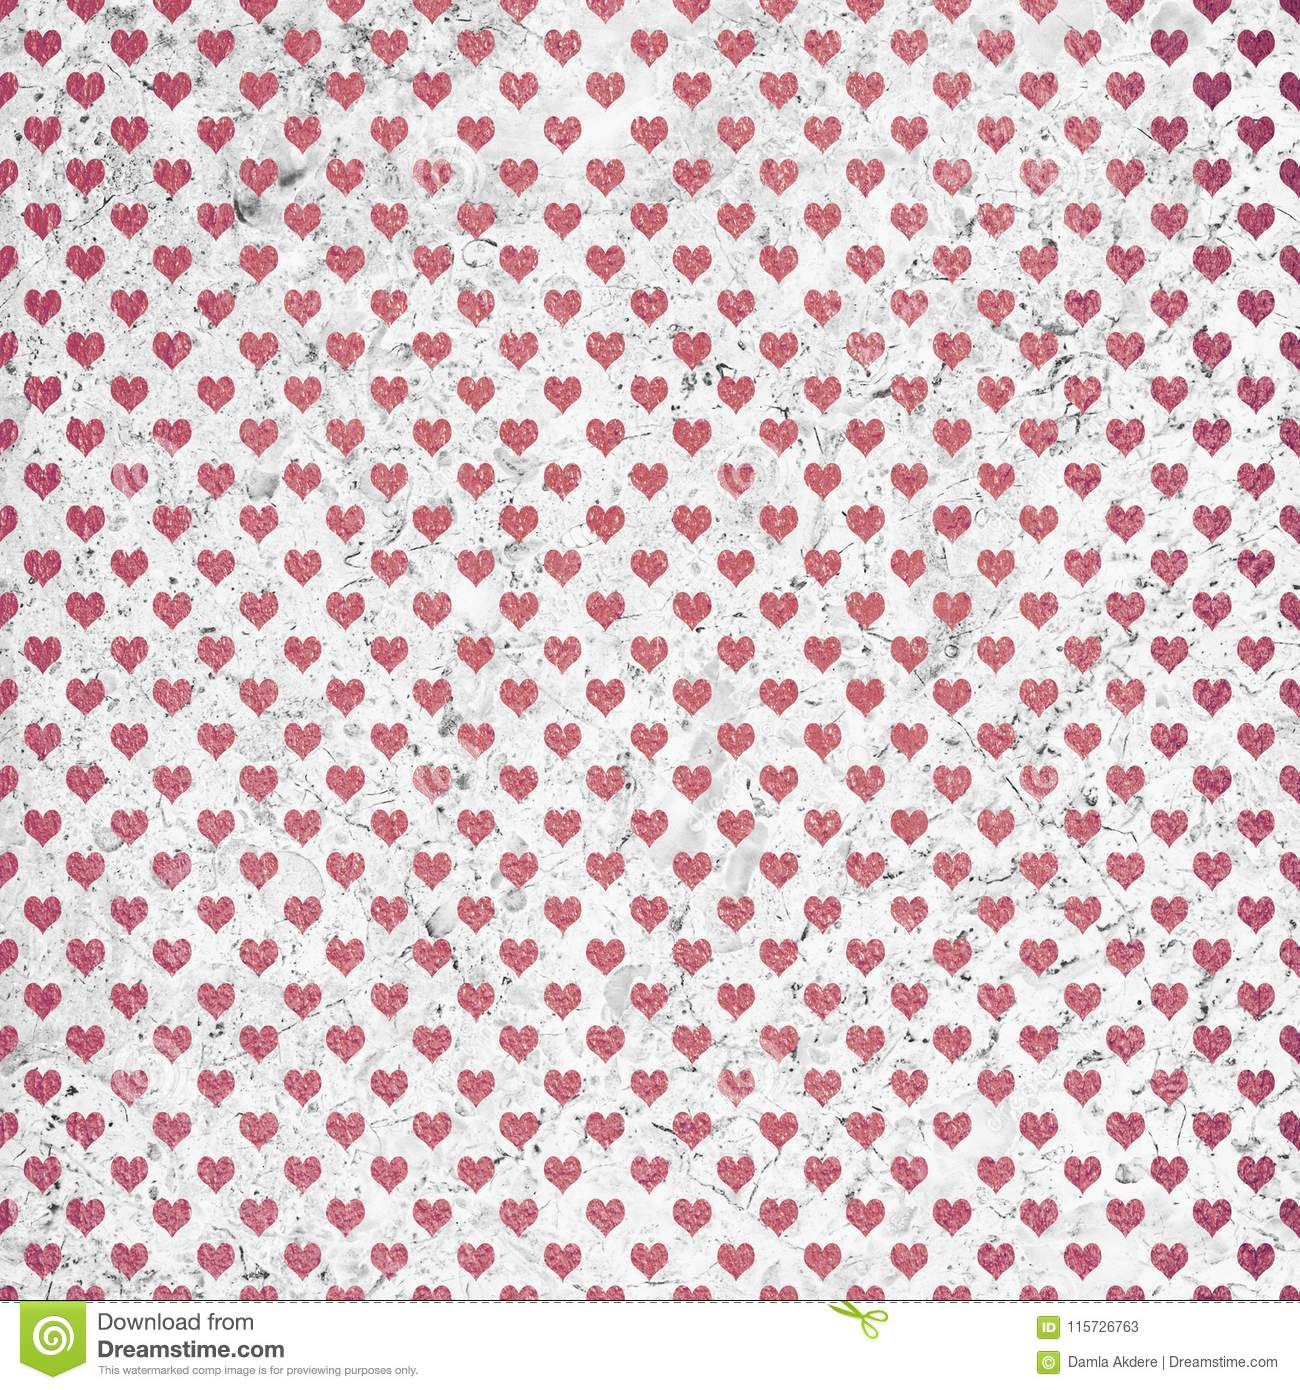 Rose Gold Heart On Marble Background Rose Gold Texture Rose Gold Heart Marble Pattern Rose Gold Marble Wallpaper Stock Illustration Illustration Of Textures Covers 115726763